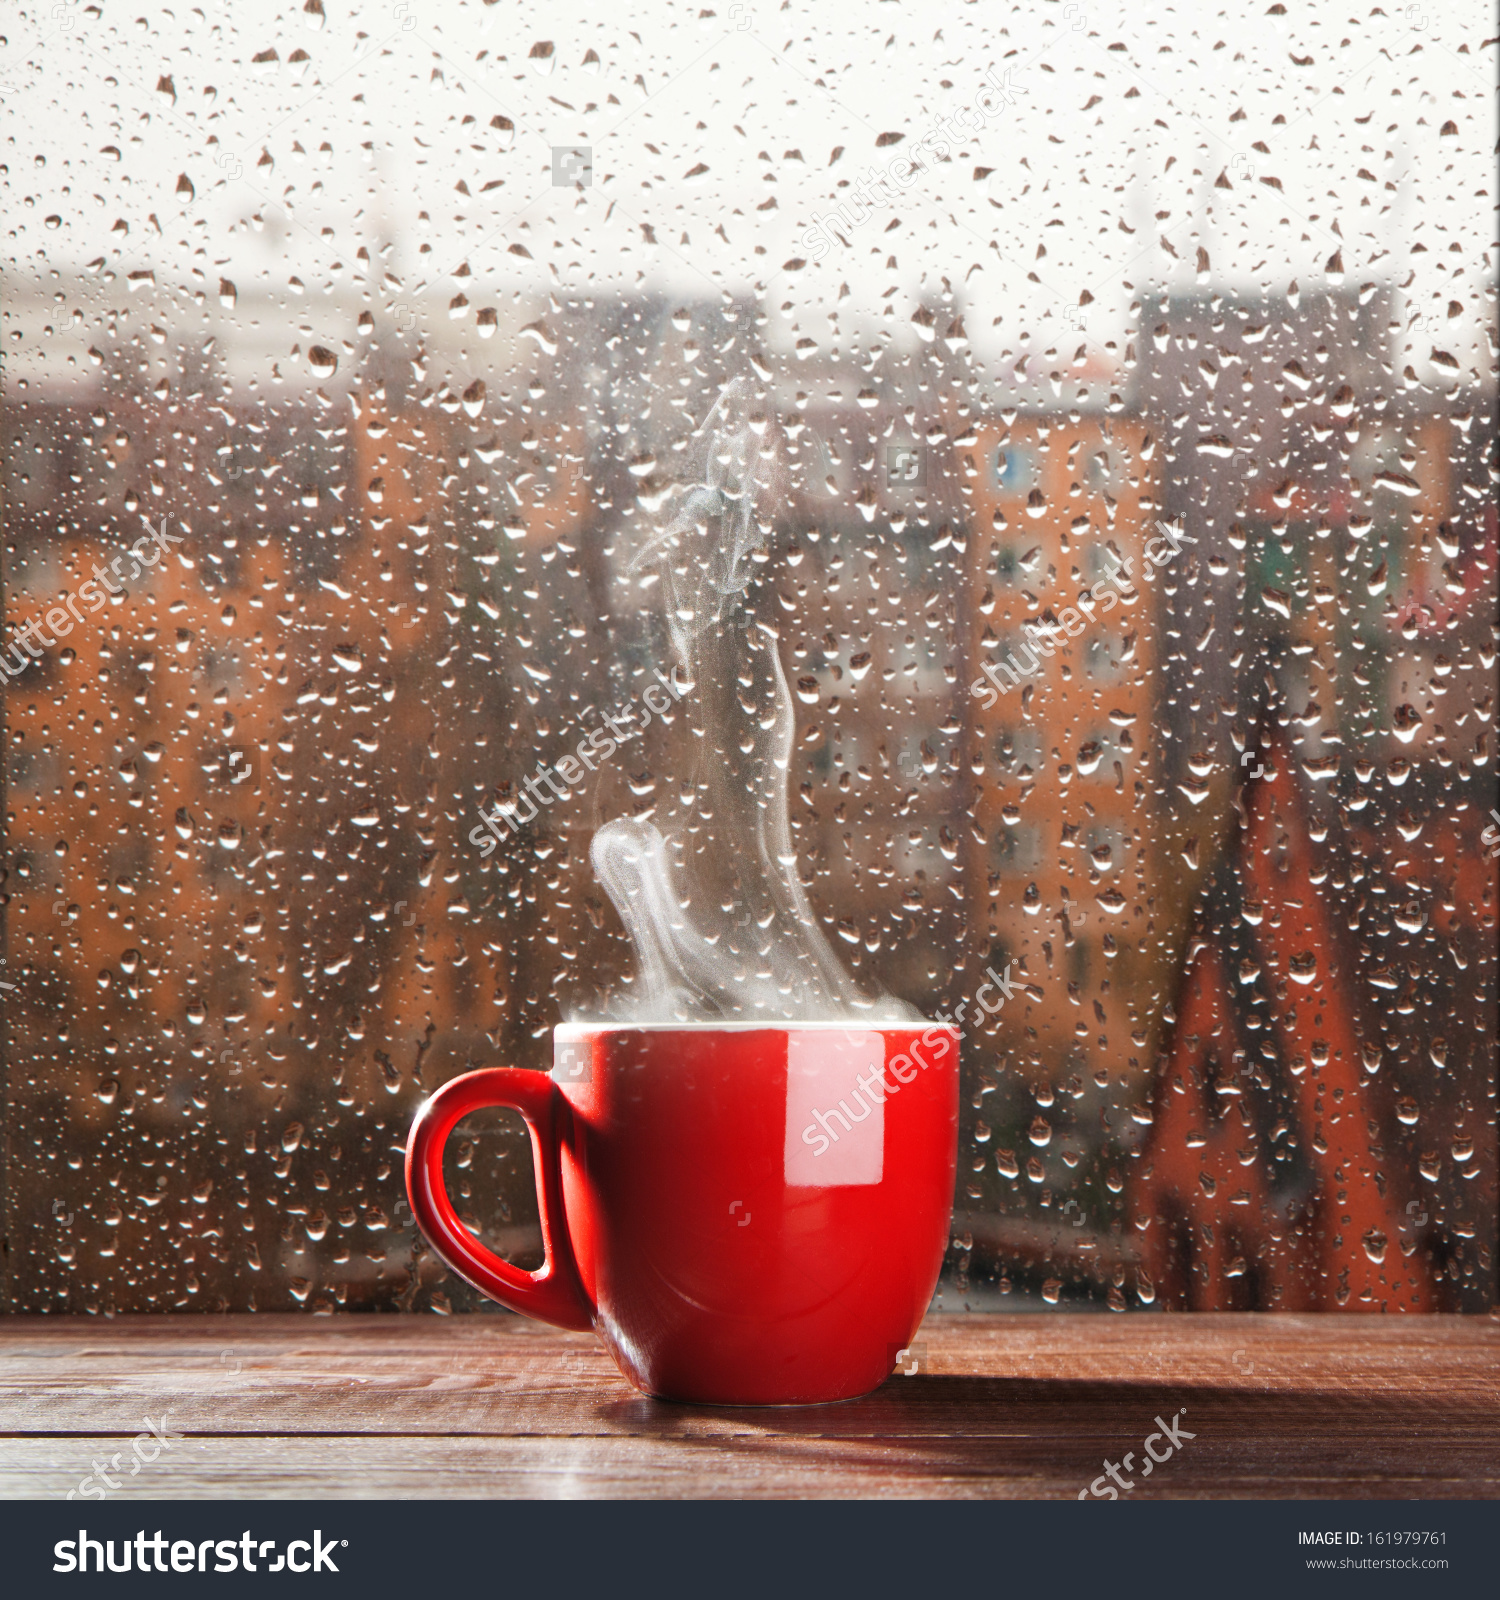 Steaming Coffee Cup On Rainy Day Stock Photo 161979761.